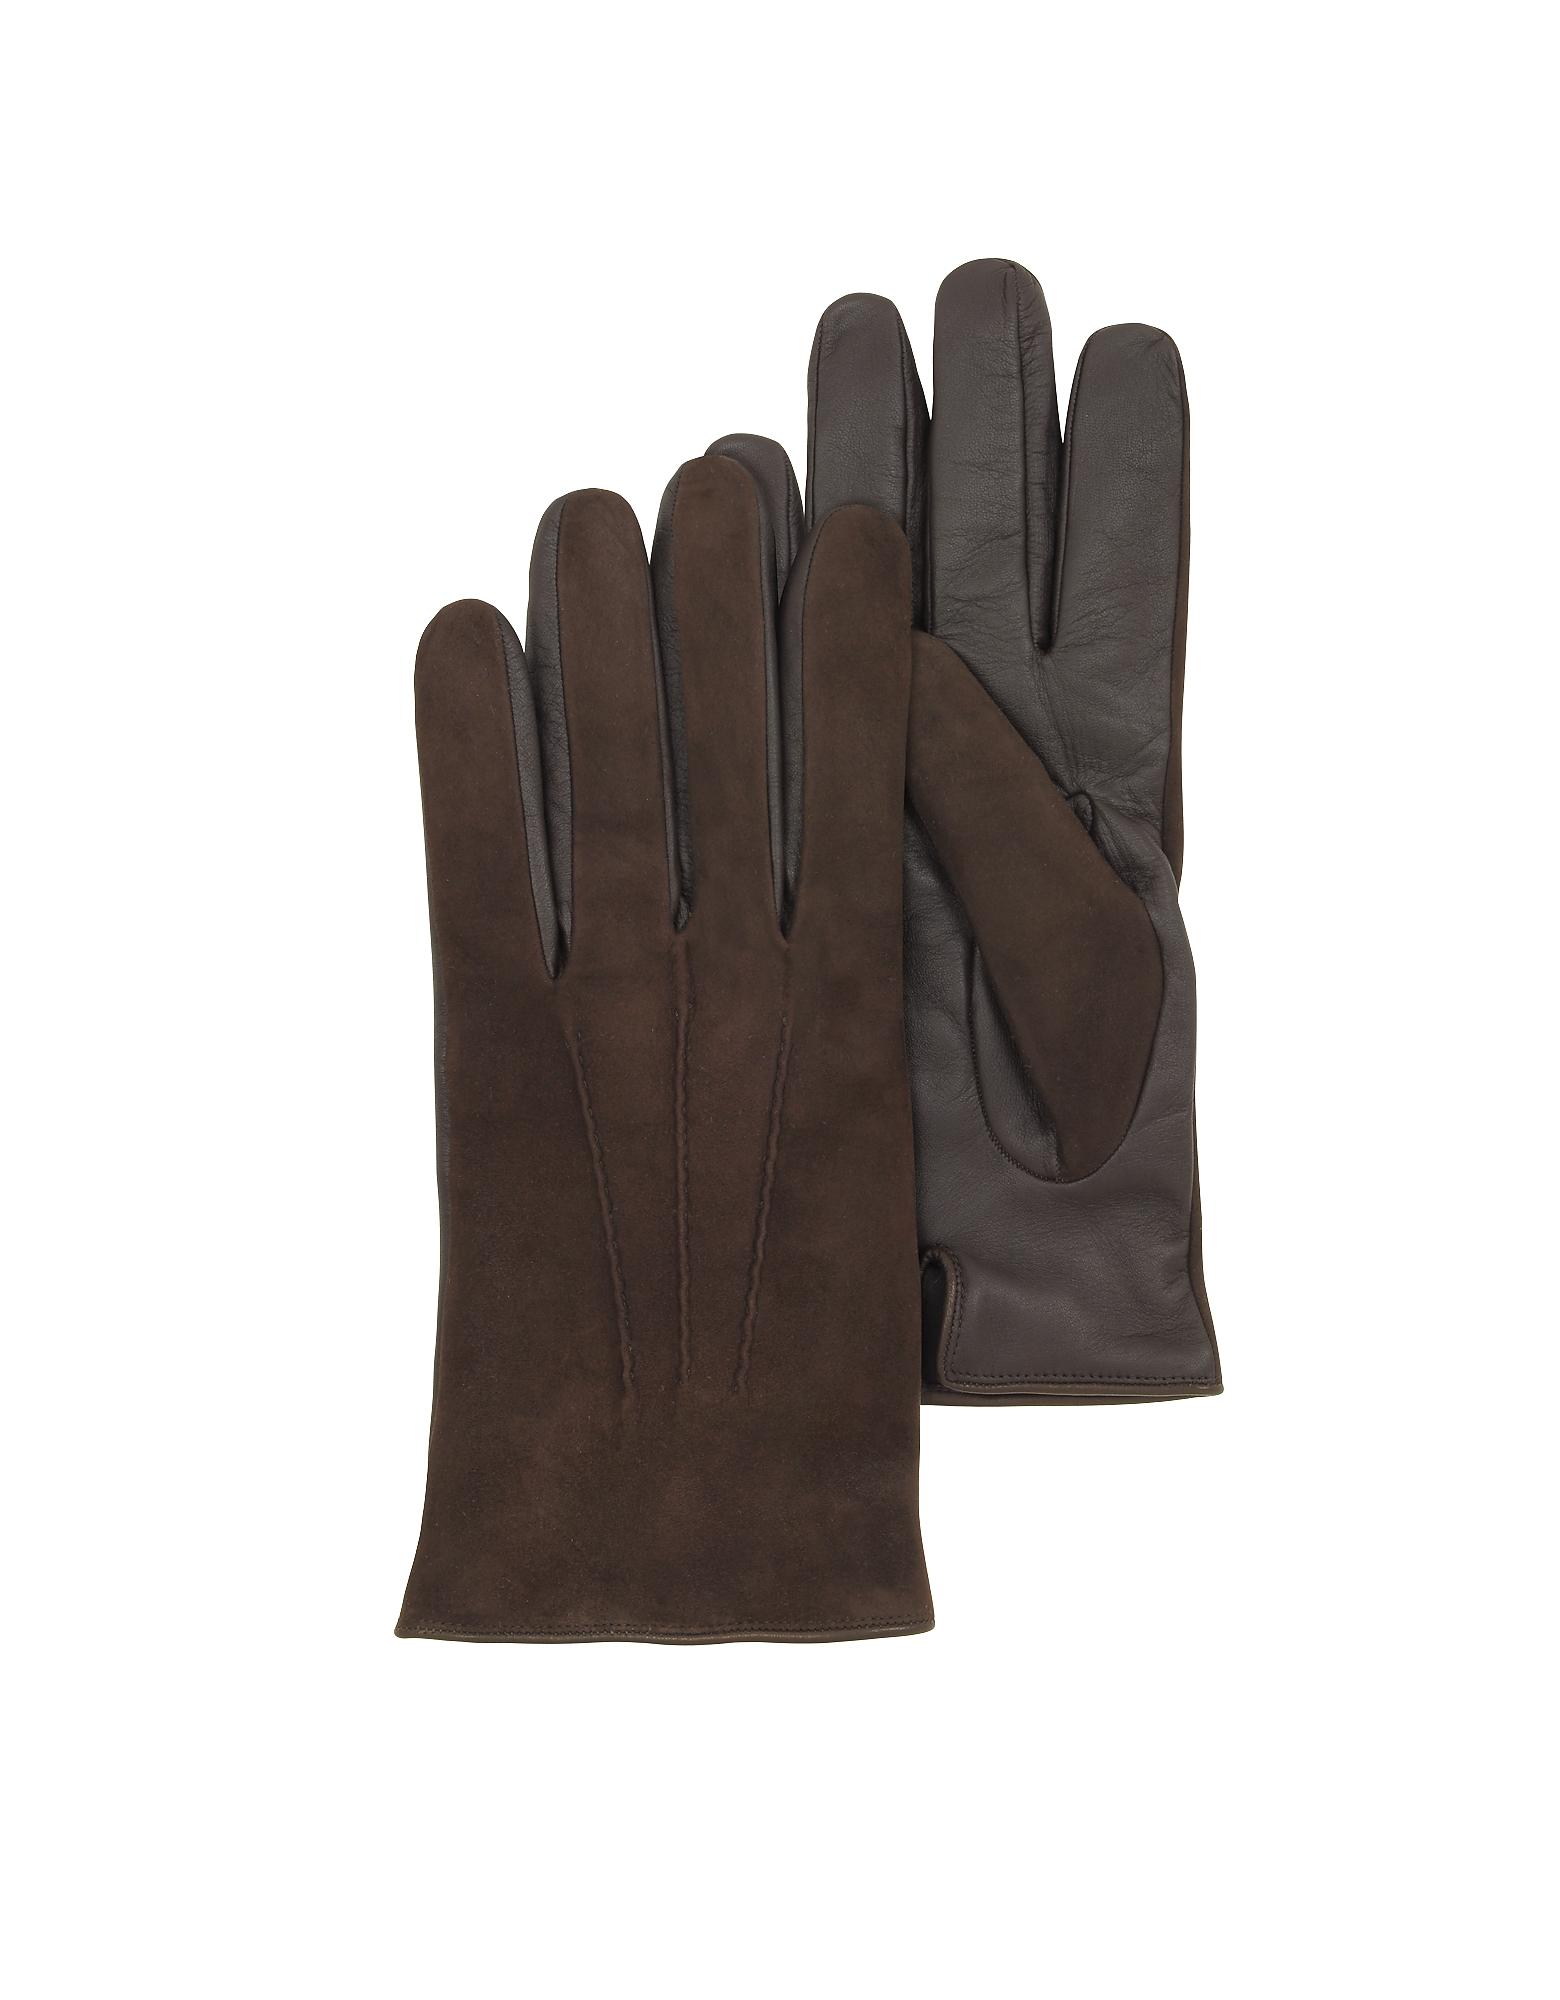 Forzieri Men's Gloves, Brown Touch Screen Leather Men's Gloves